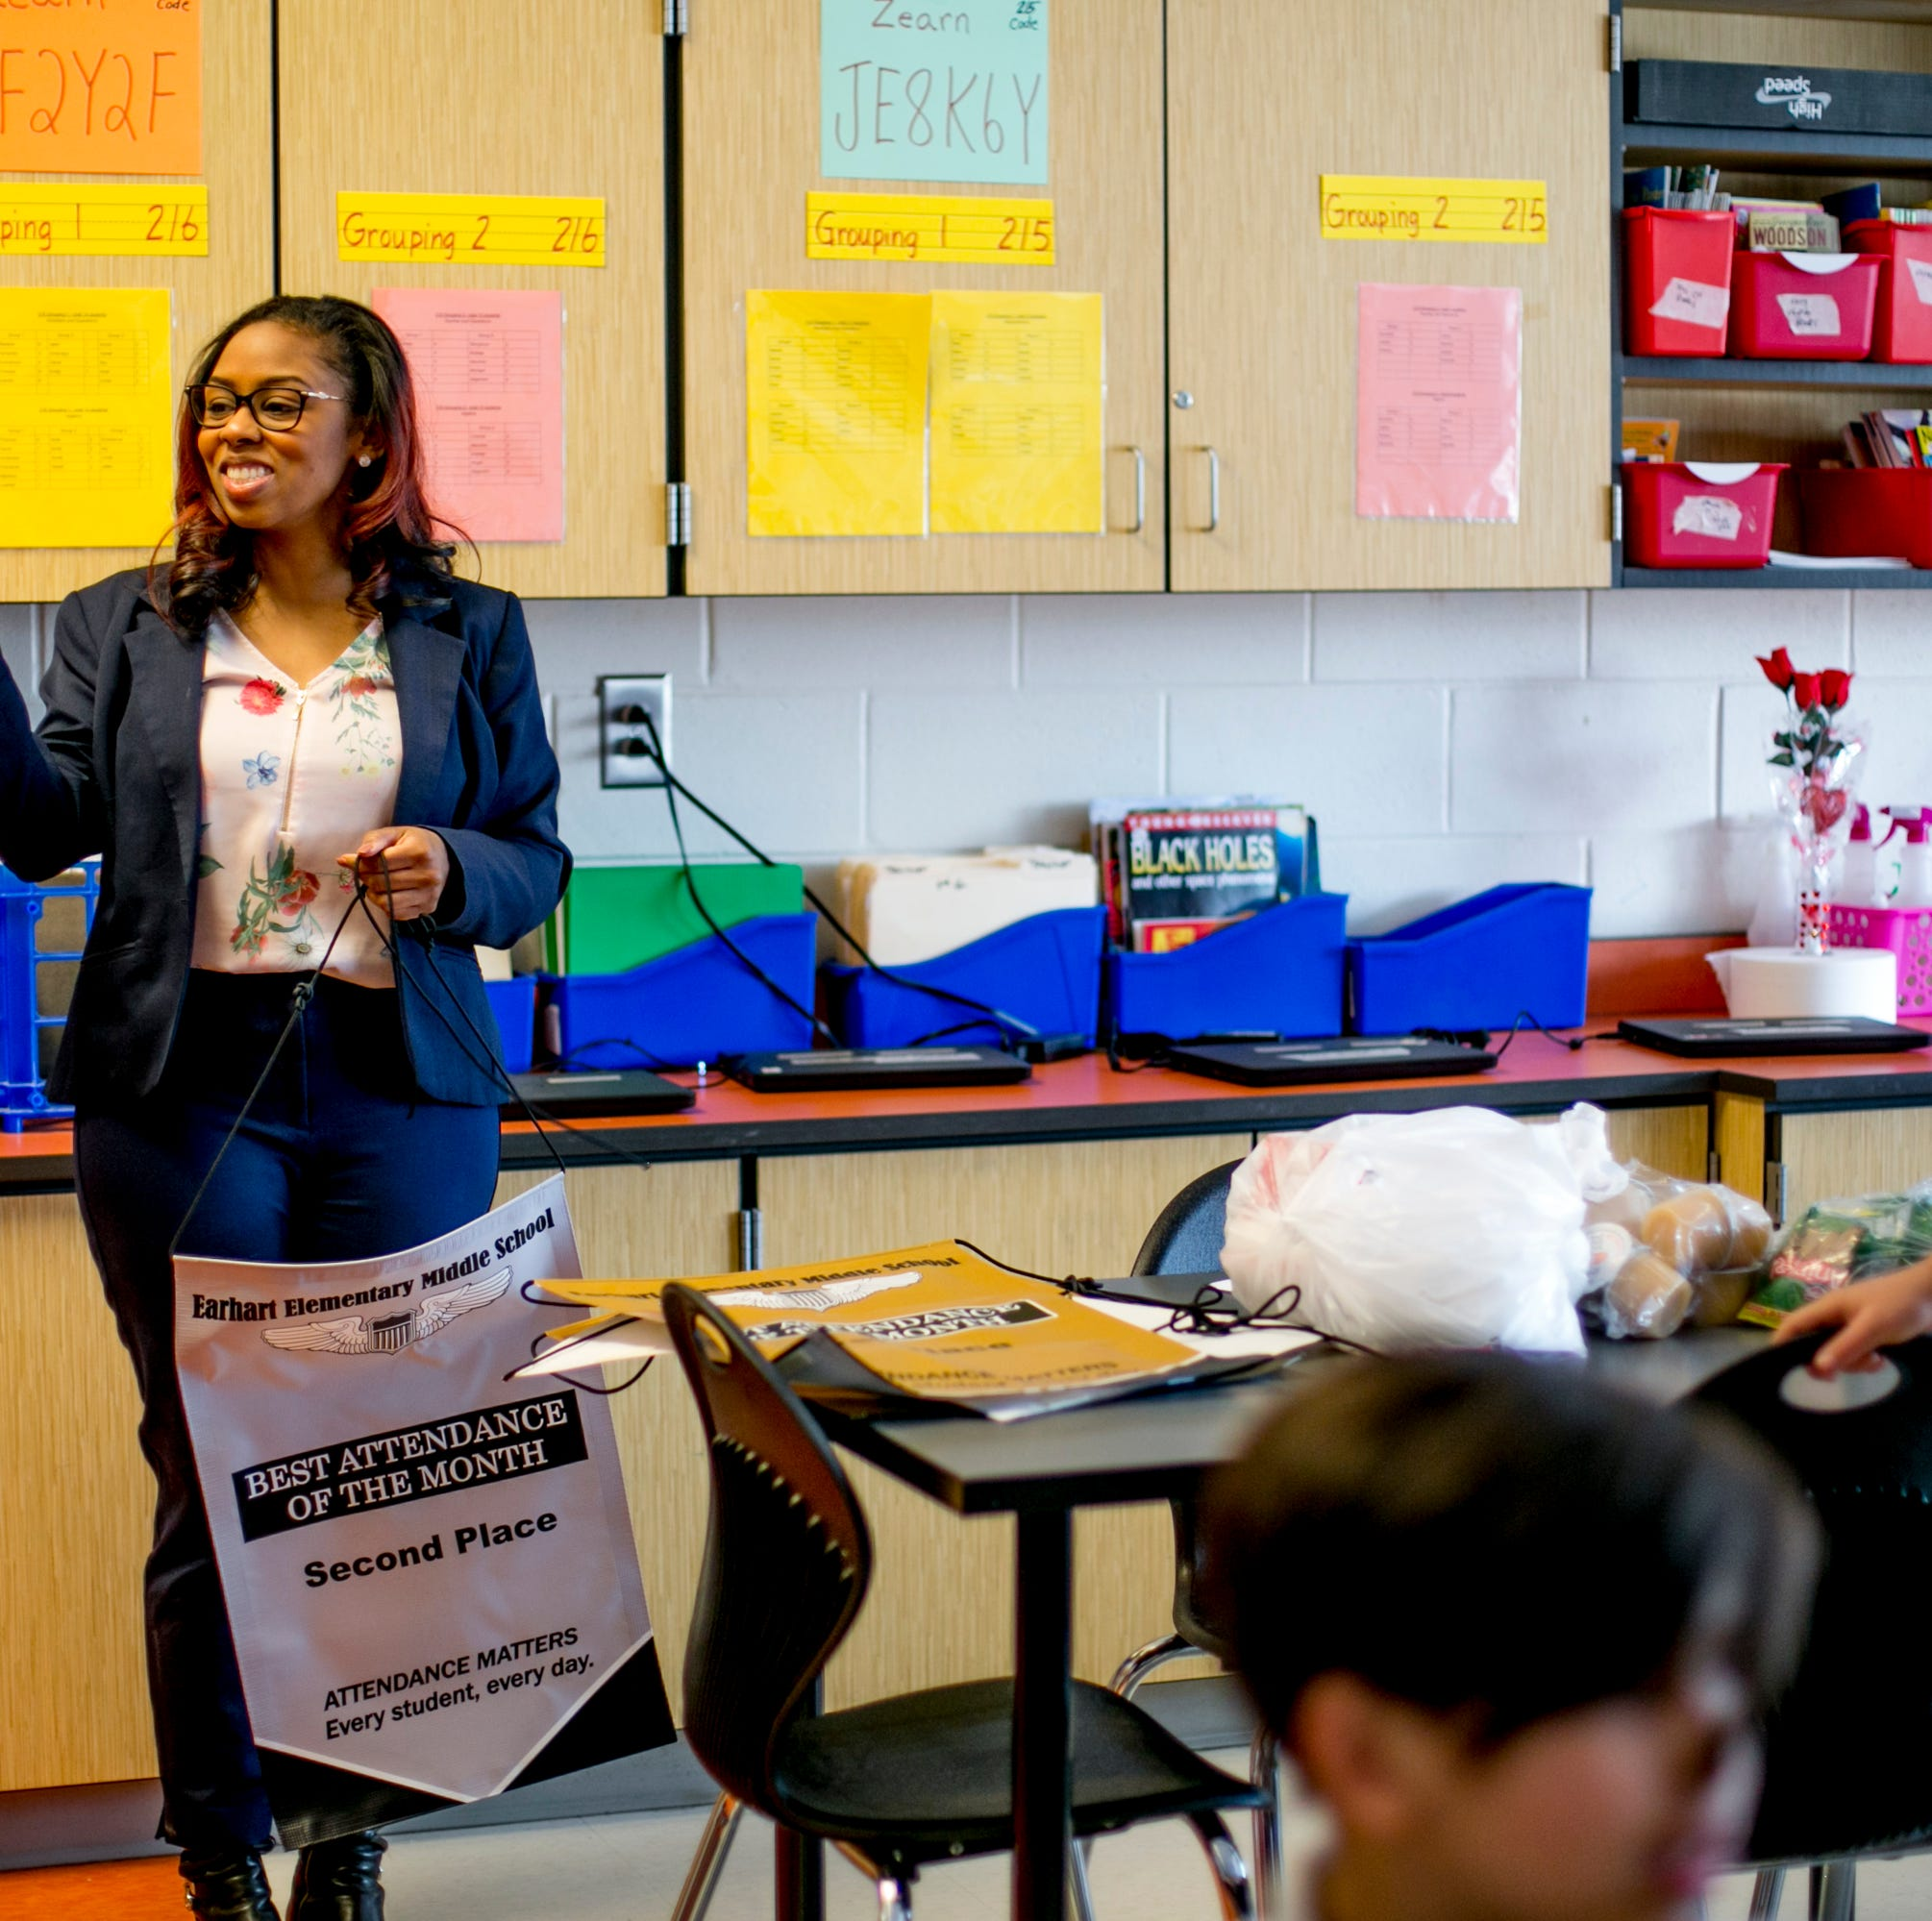 70% of Detroit students are chronically absent. Here's how the school district fights it